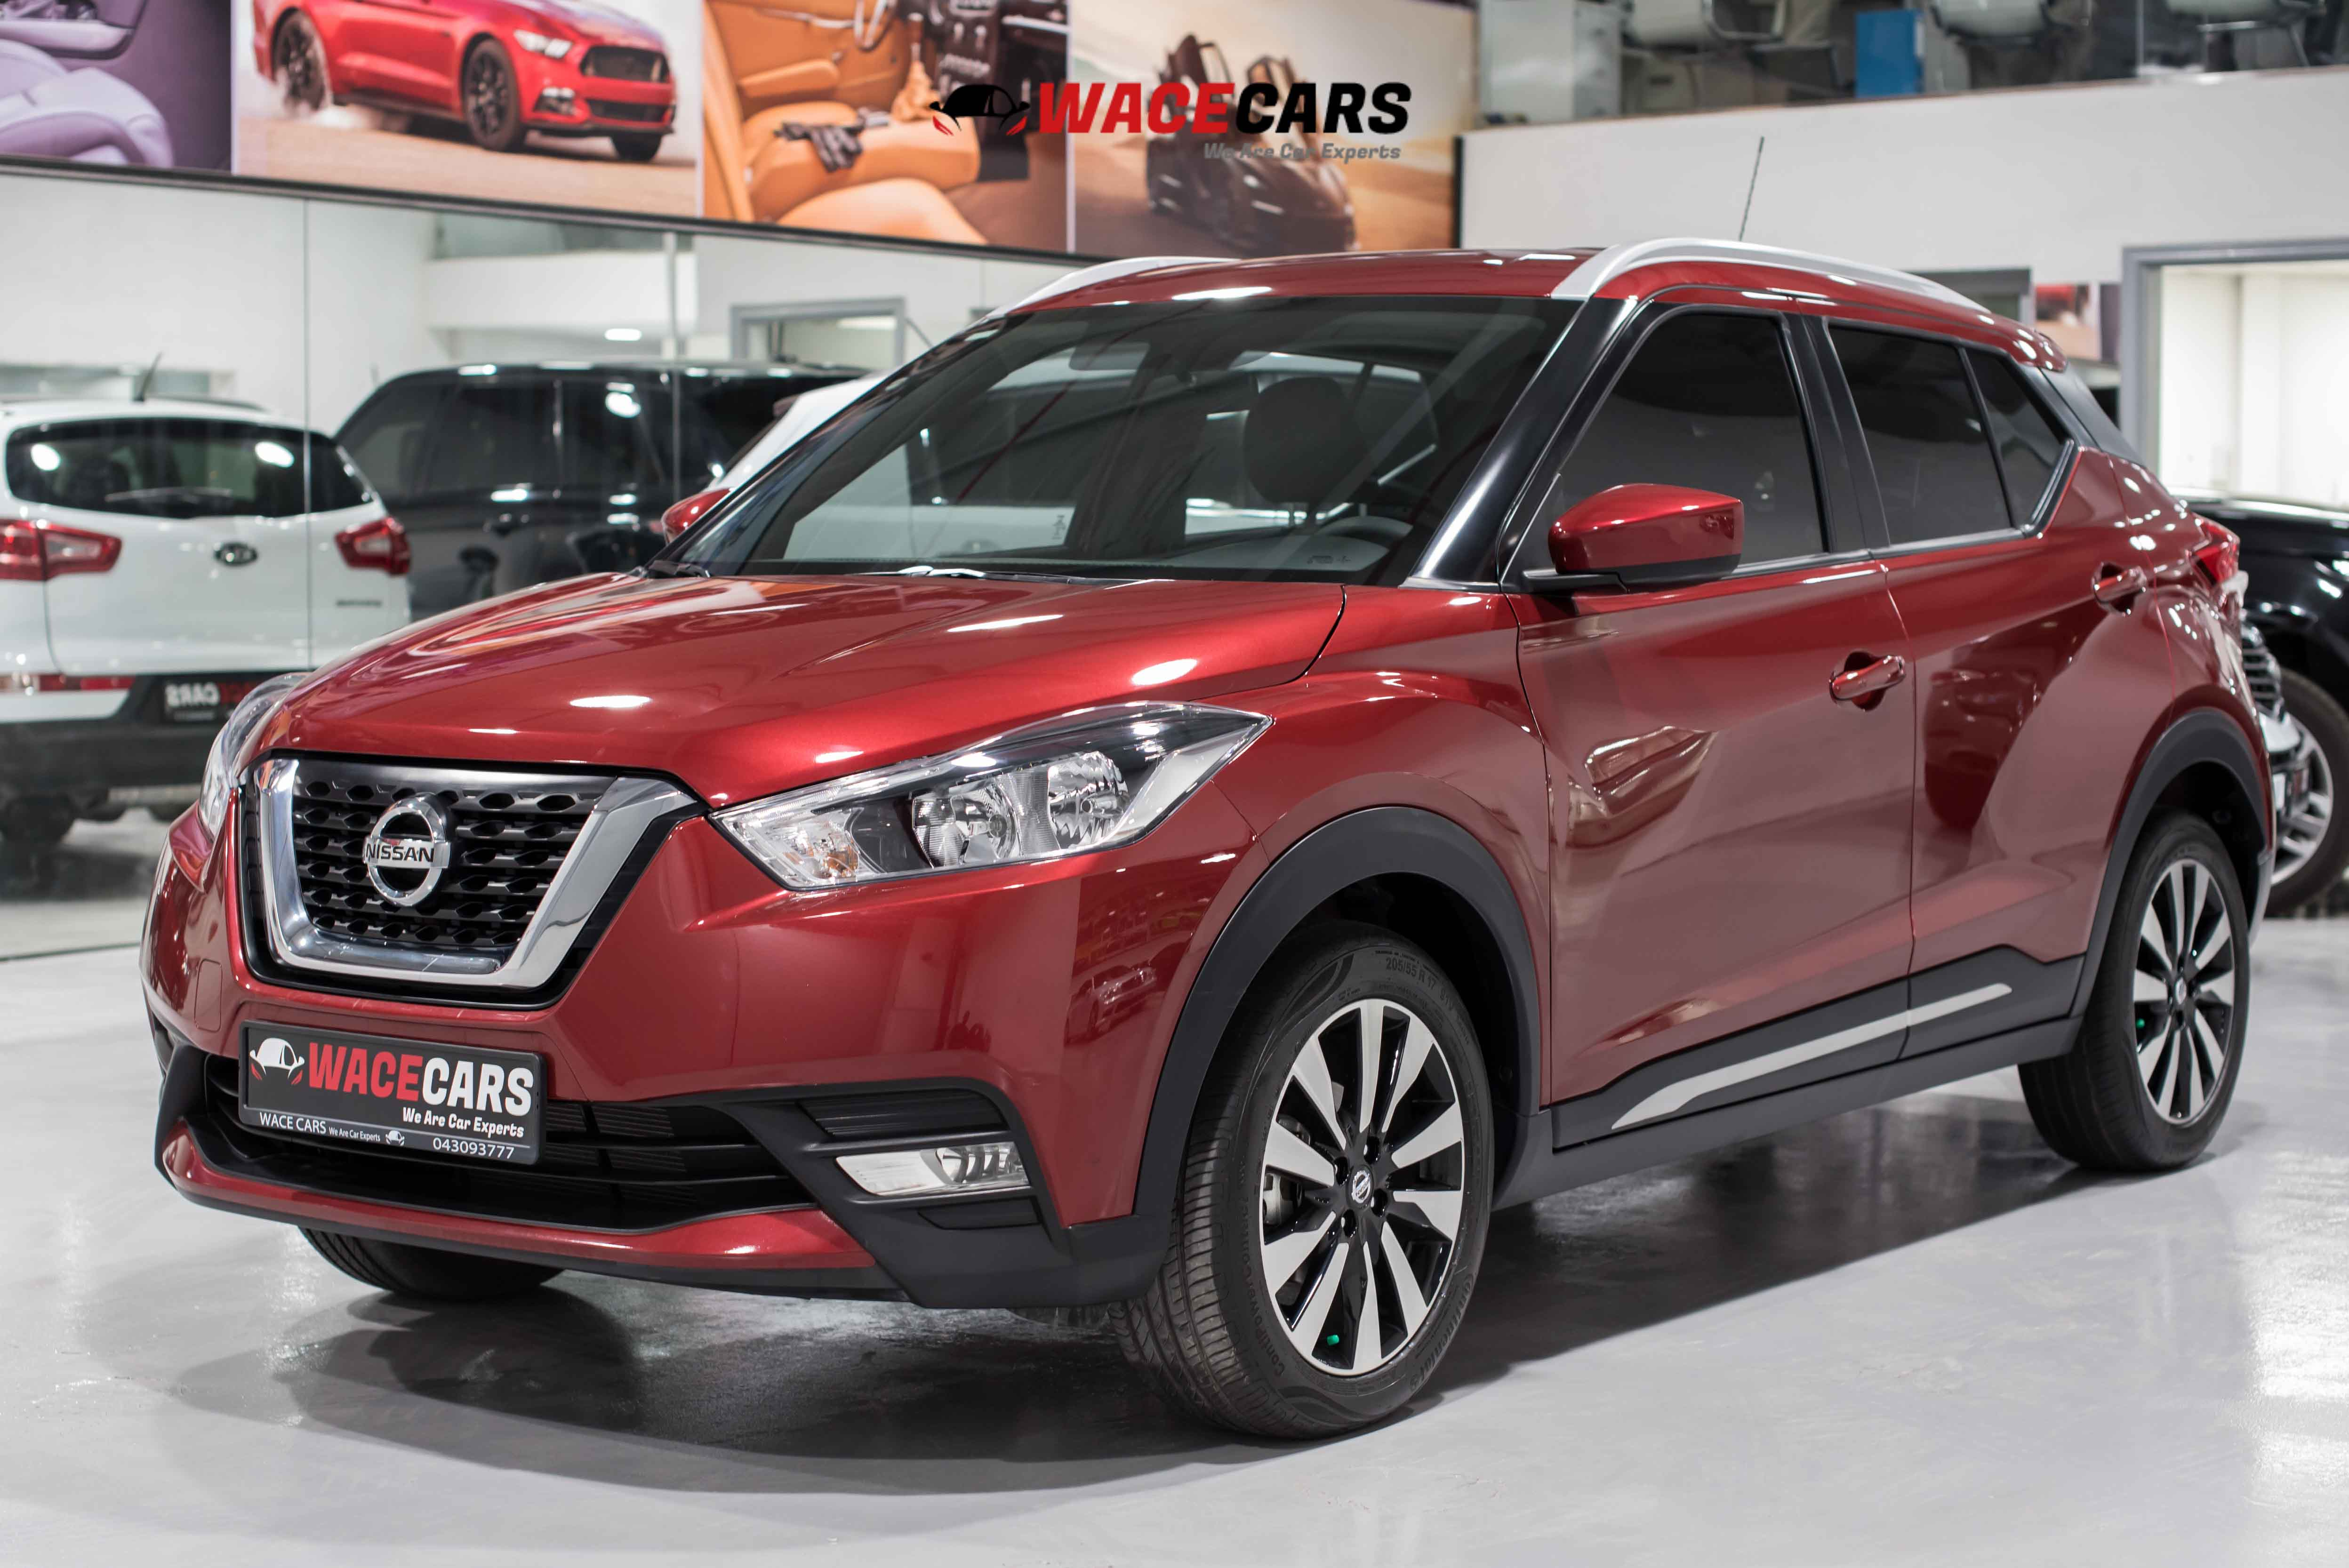 Used Nissan Kicks 1.6 SL 2018 For Sale In Dubai